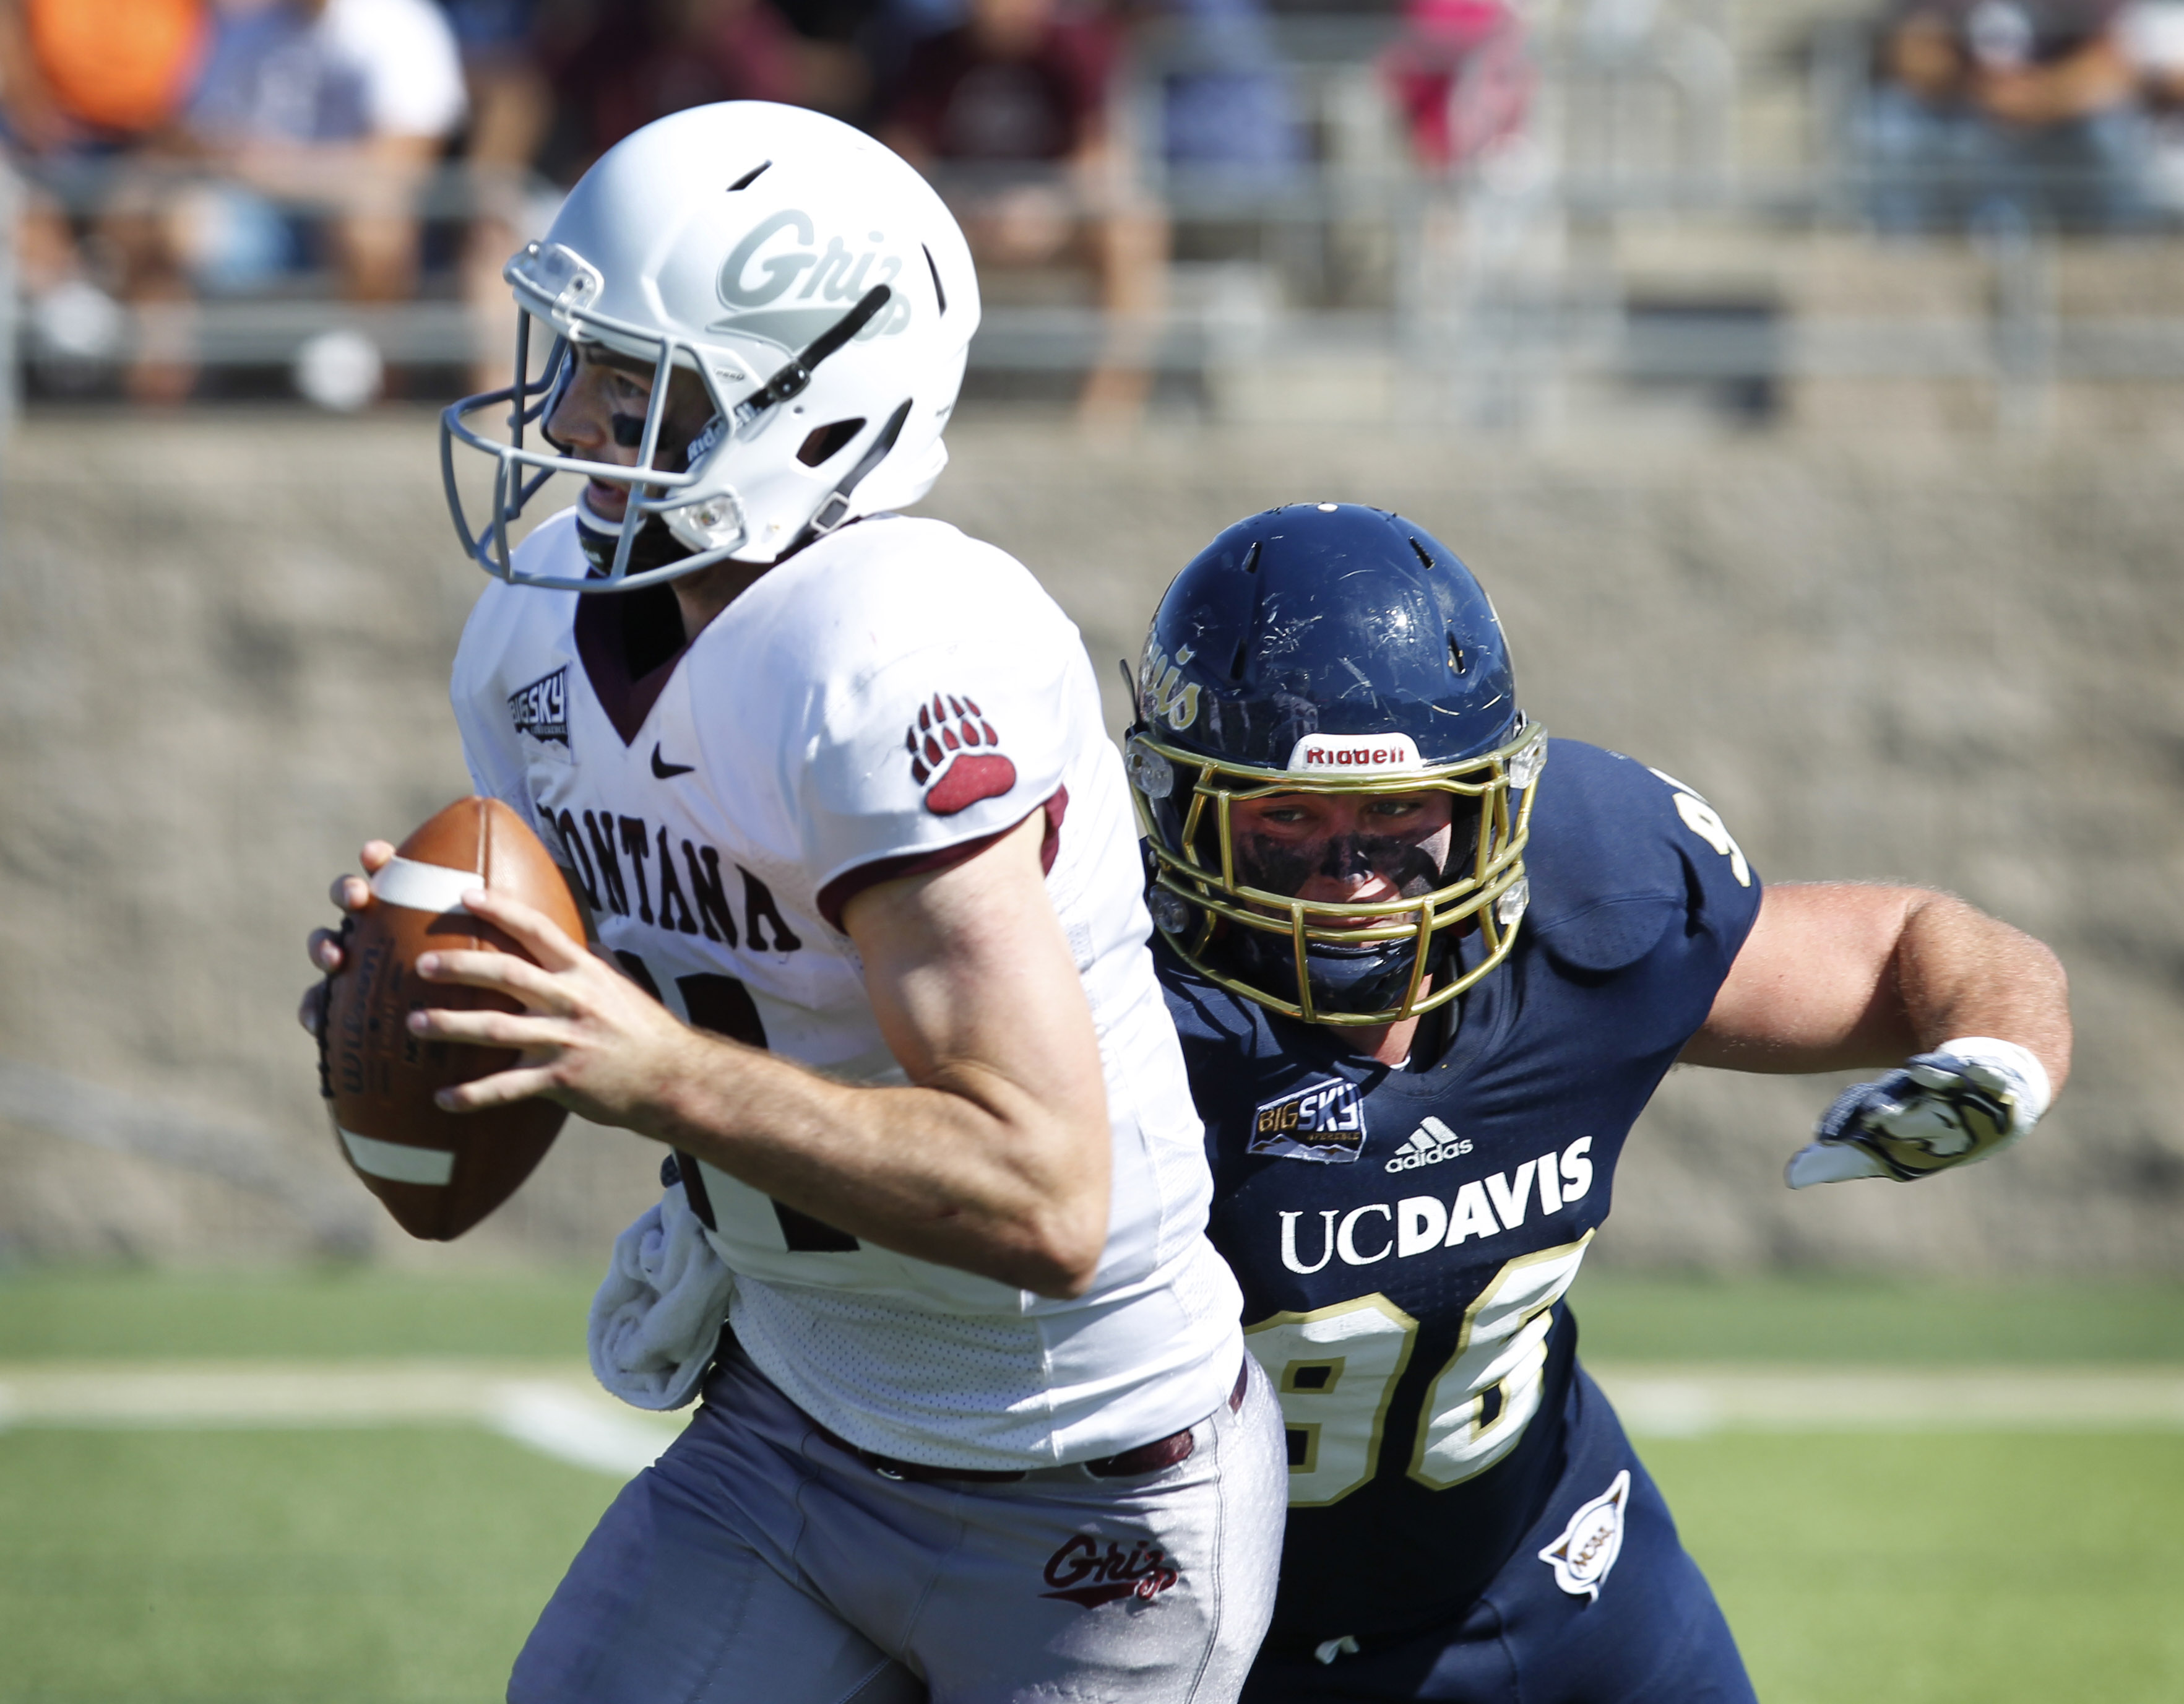 UC Davis left end Brandon Weaver, right, closes in on Montana quarterback Chad Chalich for a sack during the first half an NCAA college football game in Davis, Calif., on Saturday, Oct. 3, 2015. (AP Photo/Steve Yeater)